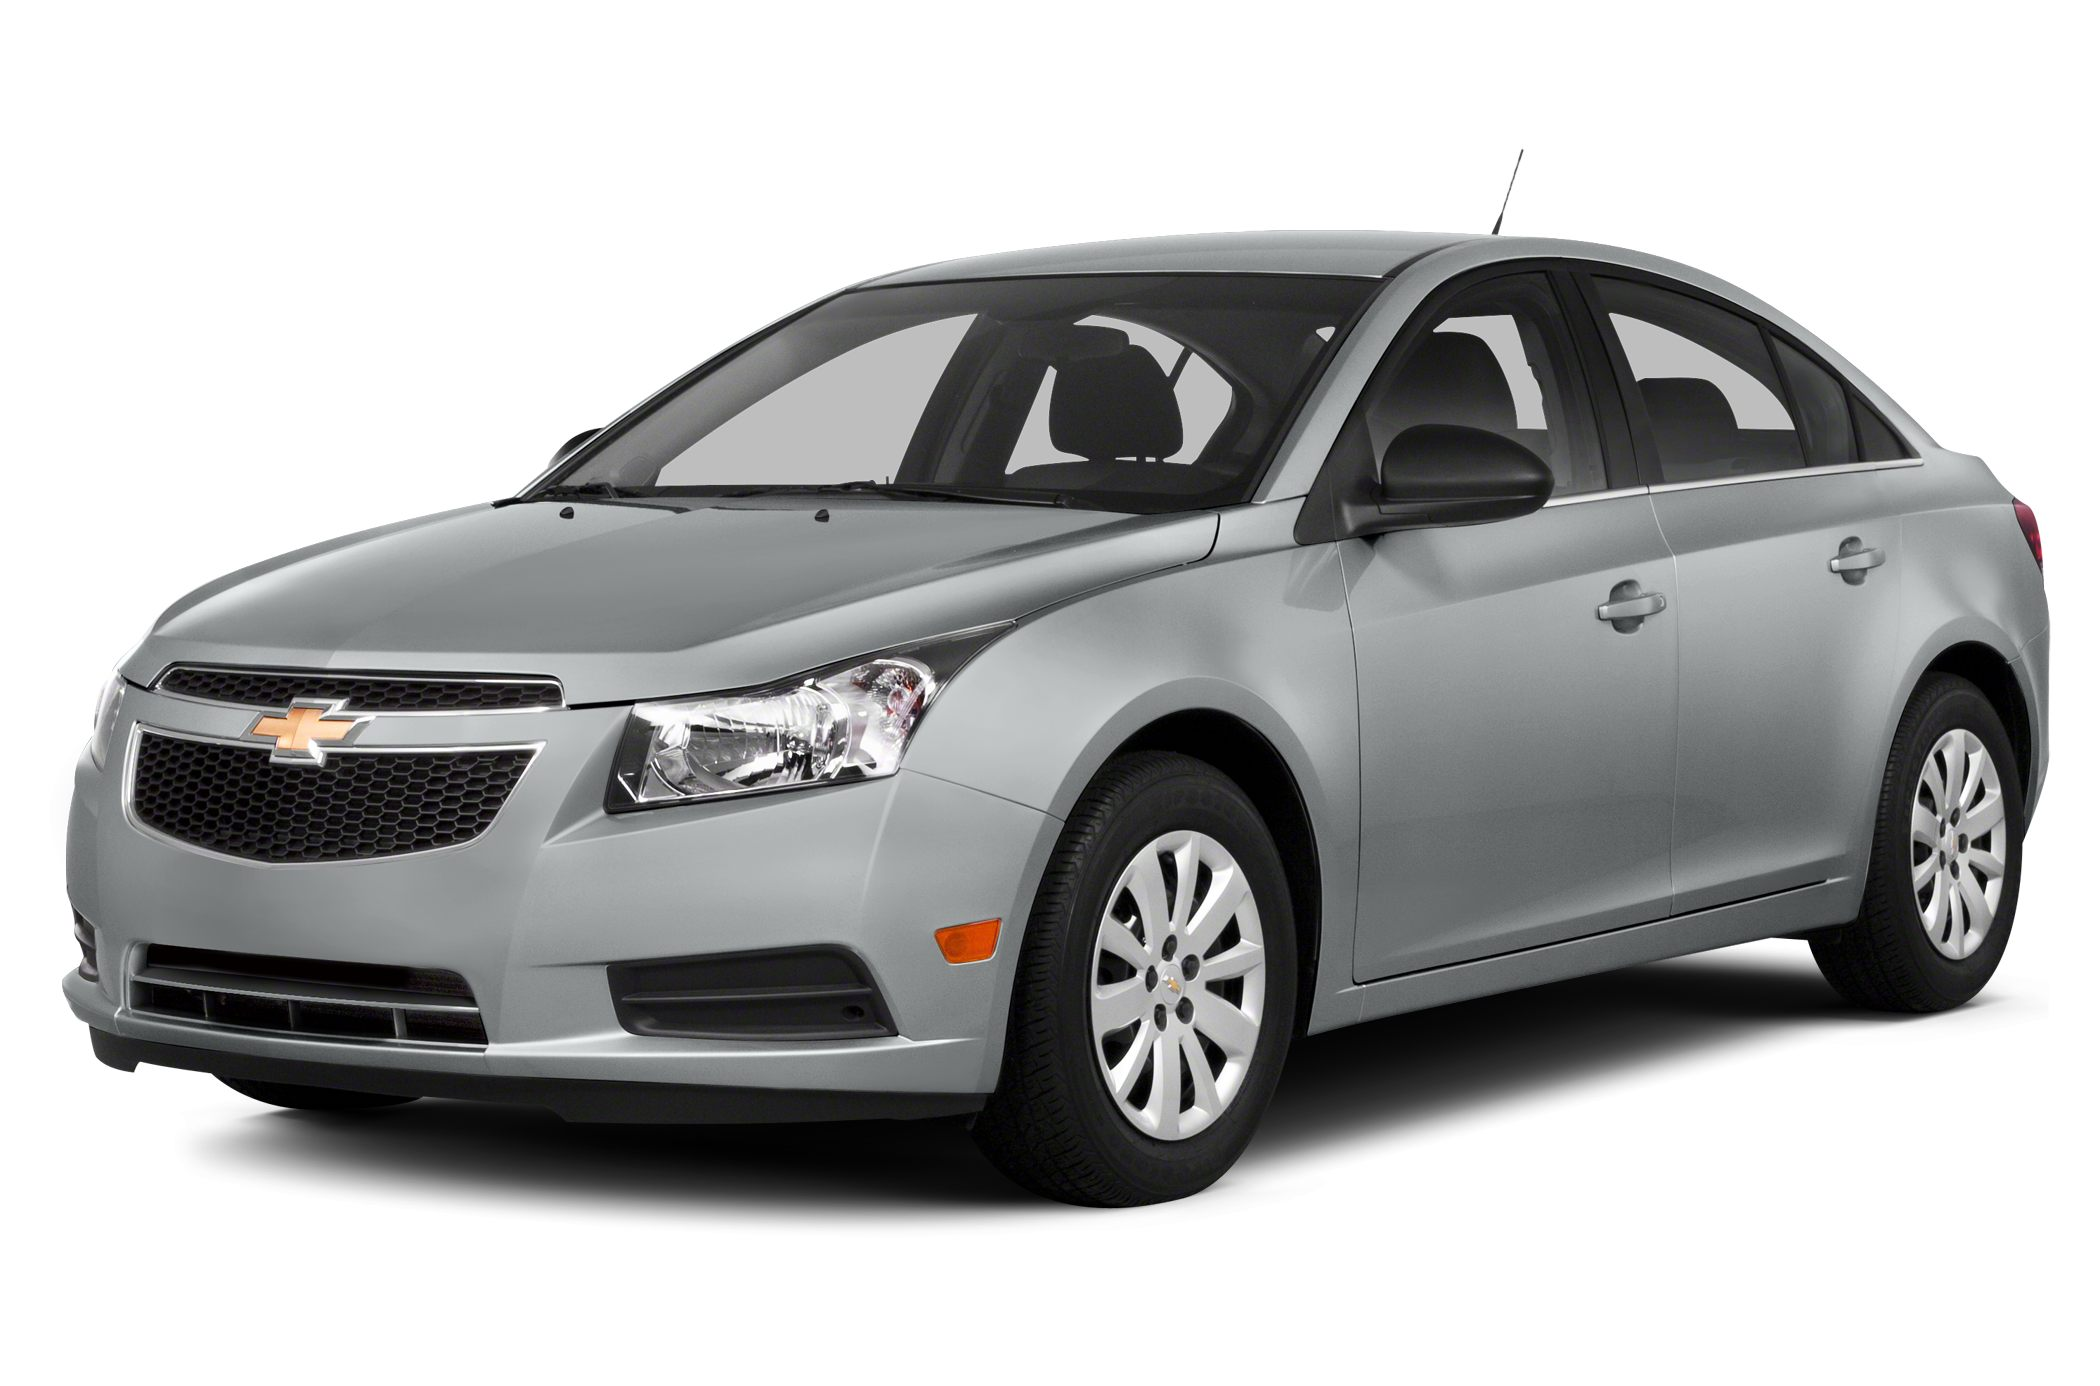 2014 Chevrolet Cruze 2LT Sedan for sale in Jackson for $17,000 with 40,524 miles.